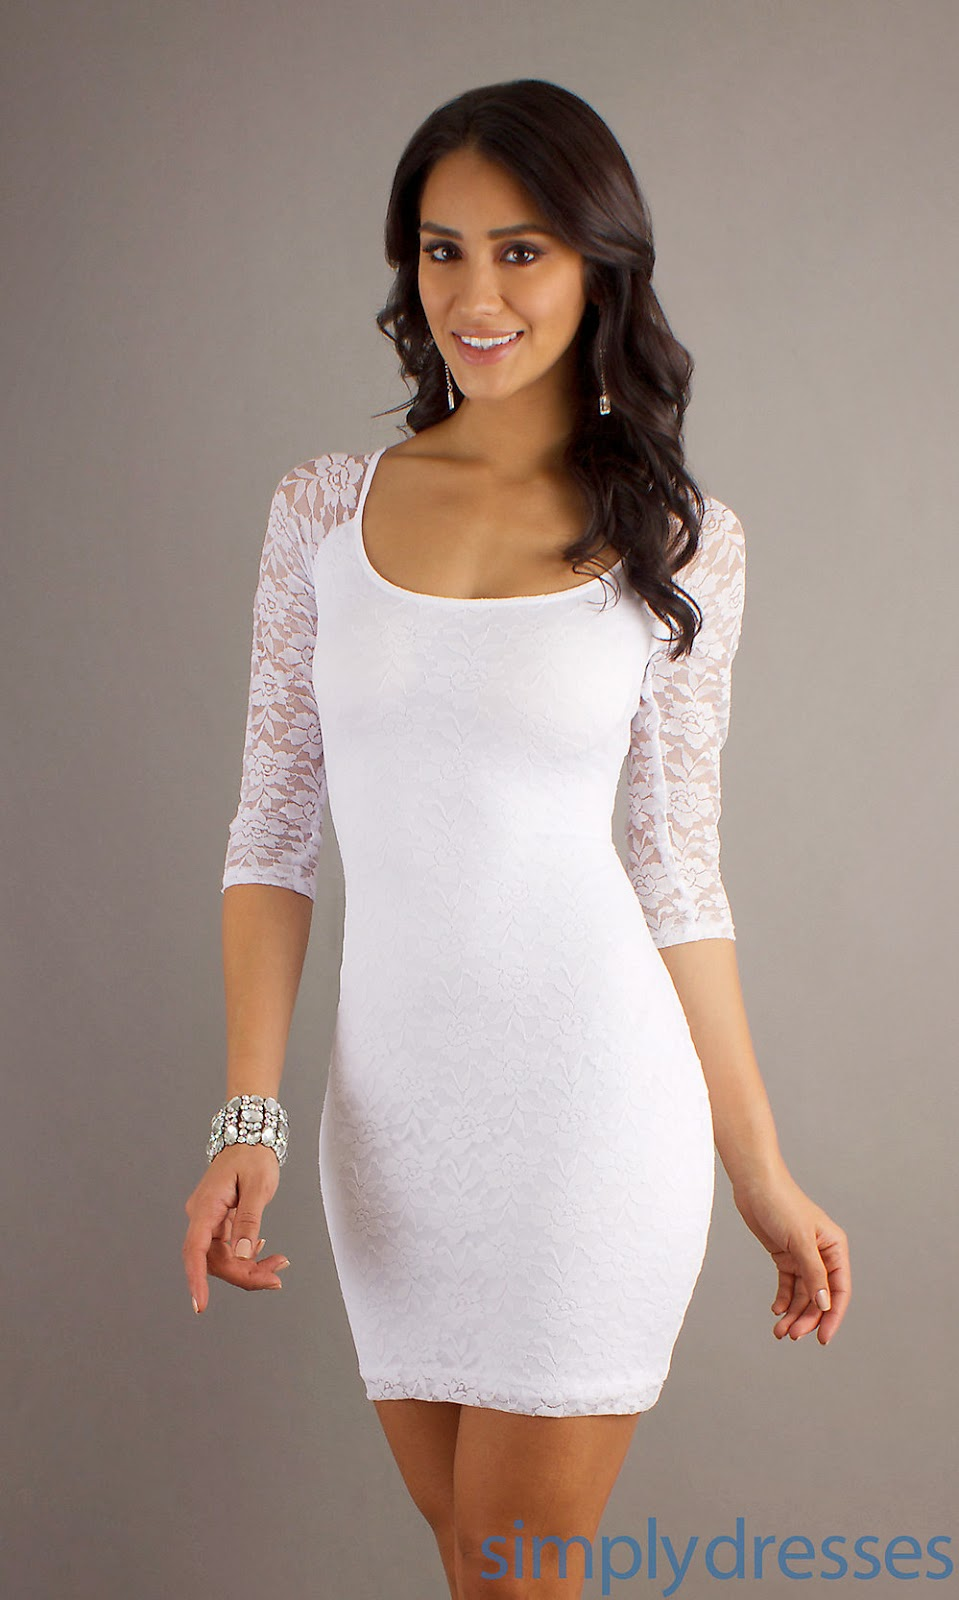 All White Dresses For Women